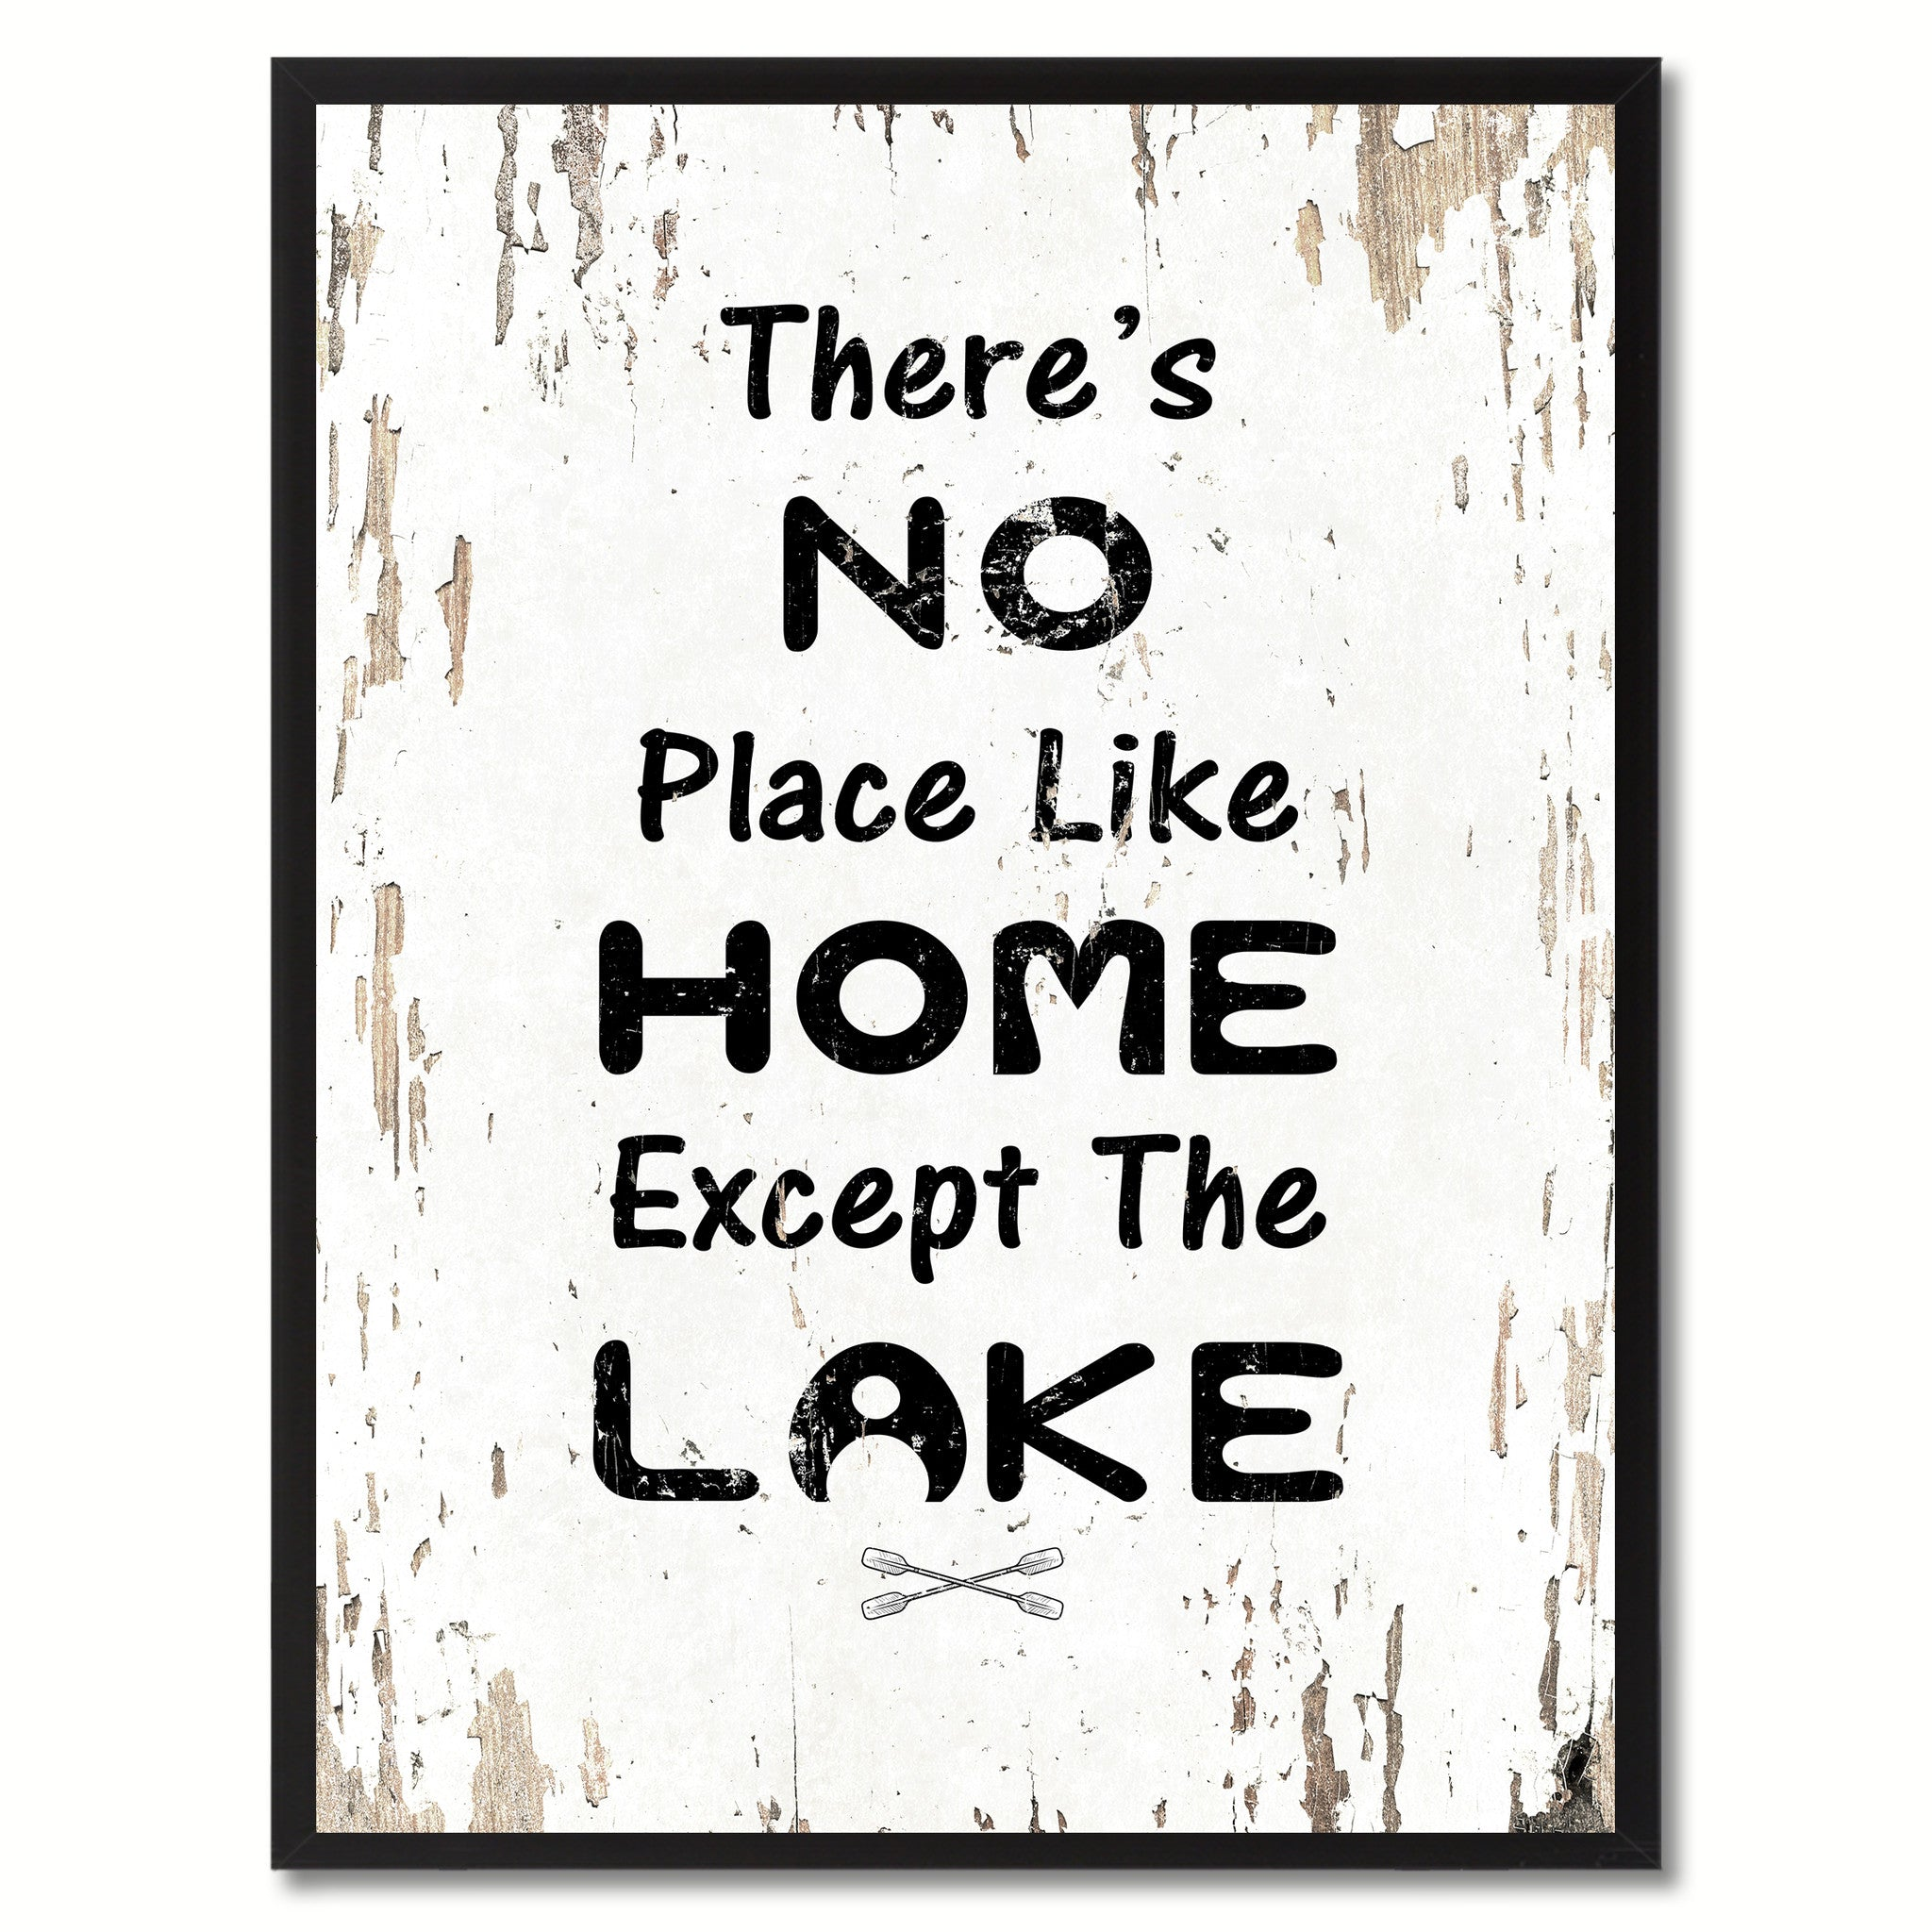 There's No Place Like Home Except The Lake Saying Canvas Print, Black Picture Frame Home Decor Wall Art Gifts